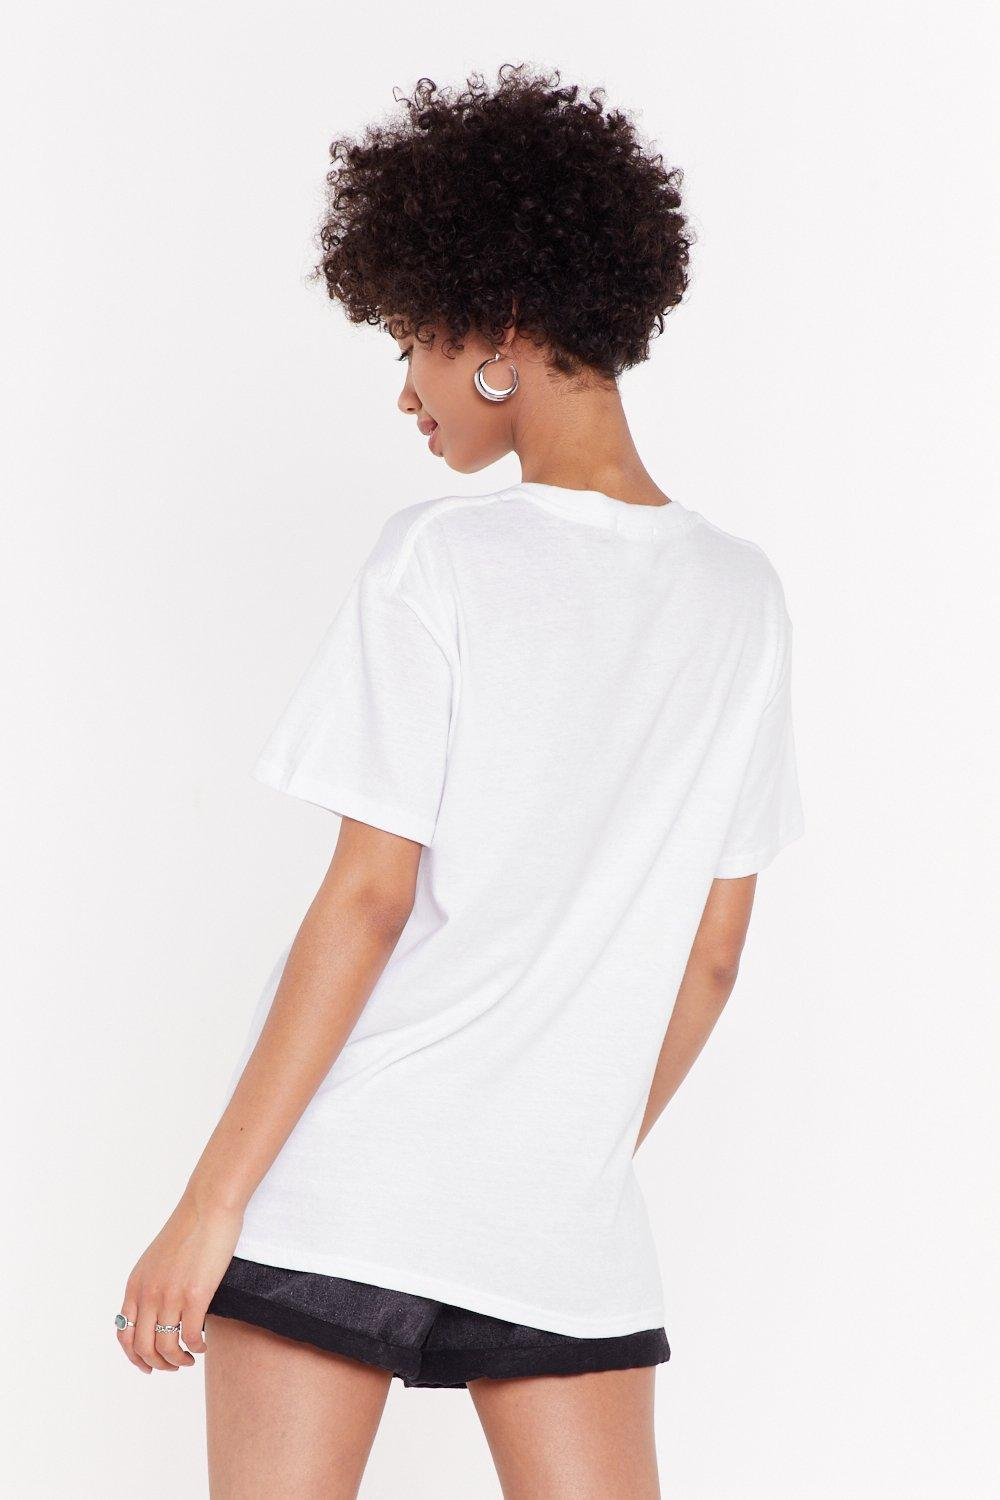 df36186a2b8 New York City Skyline Graphic Tee | Shop Clothes at Nasty Gal!